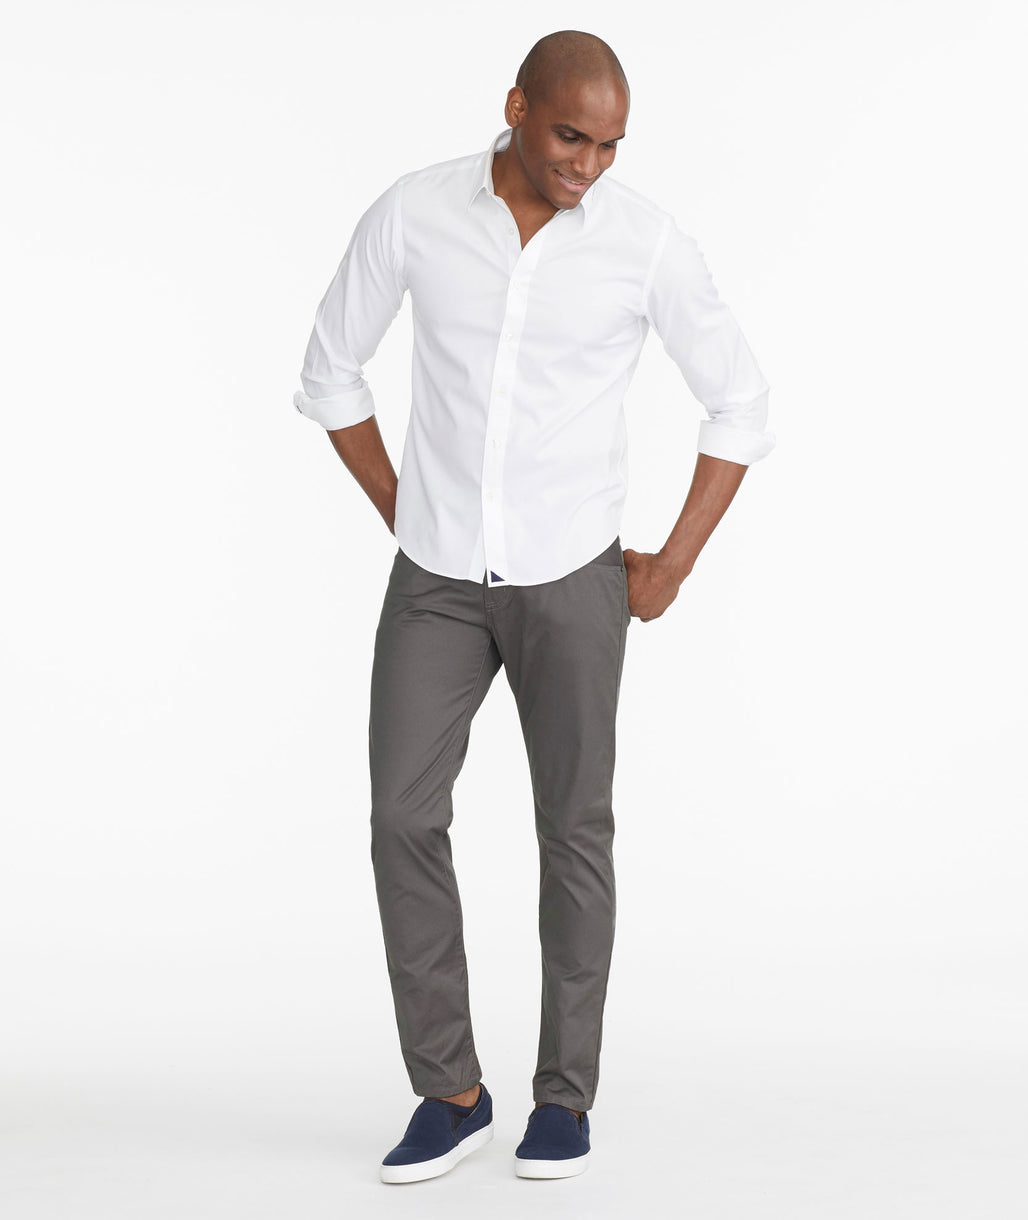 Model wearing a Dark Grey 5-Pocket Pants